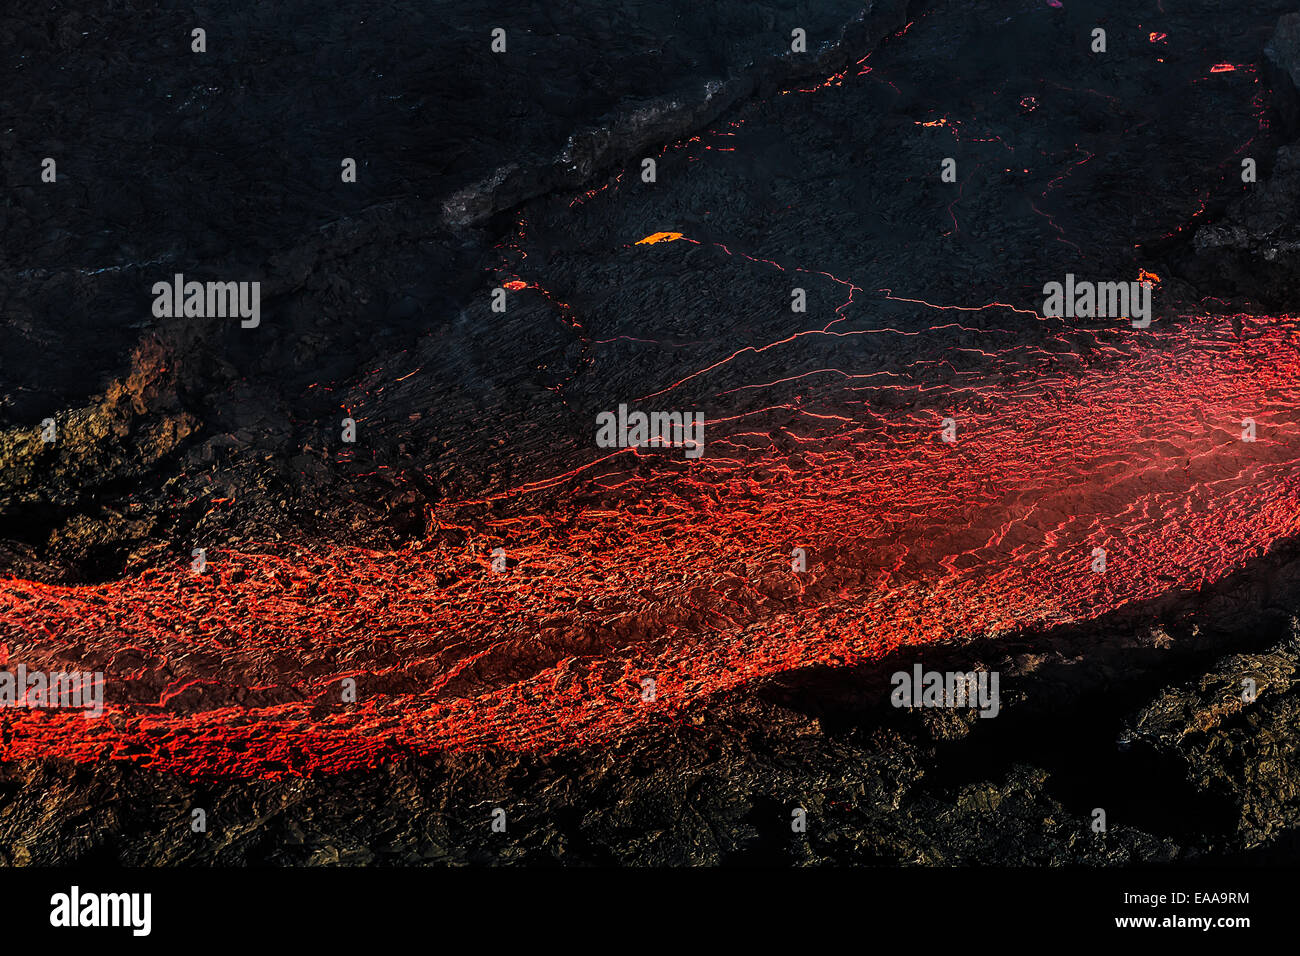 Aerial view of lava flowing, Holuhraun Fissure Eruption, Bardarbunga Volcano, Iceland Stock Photo